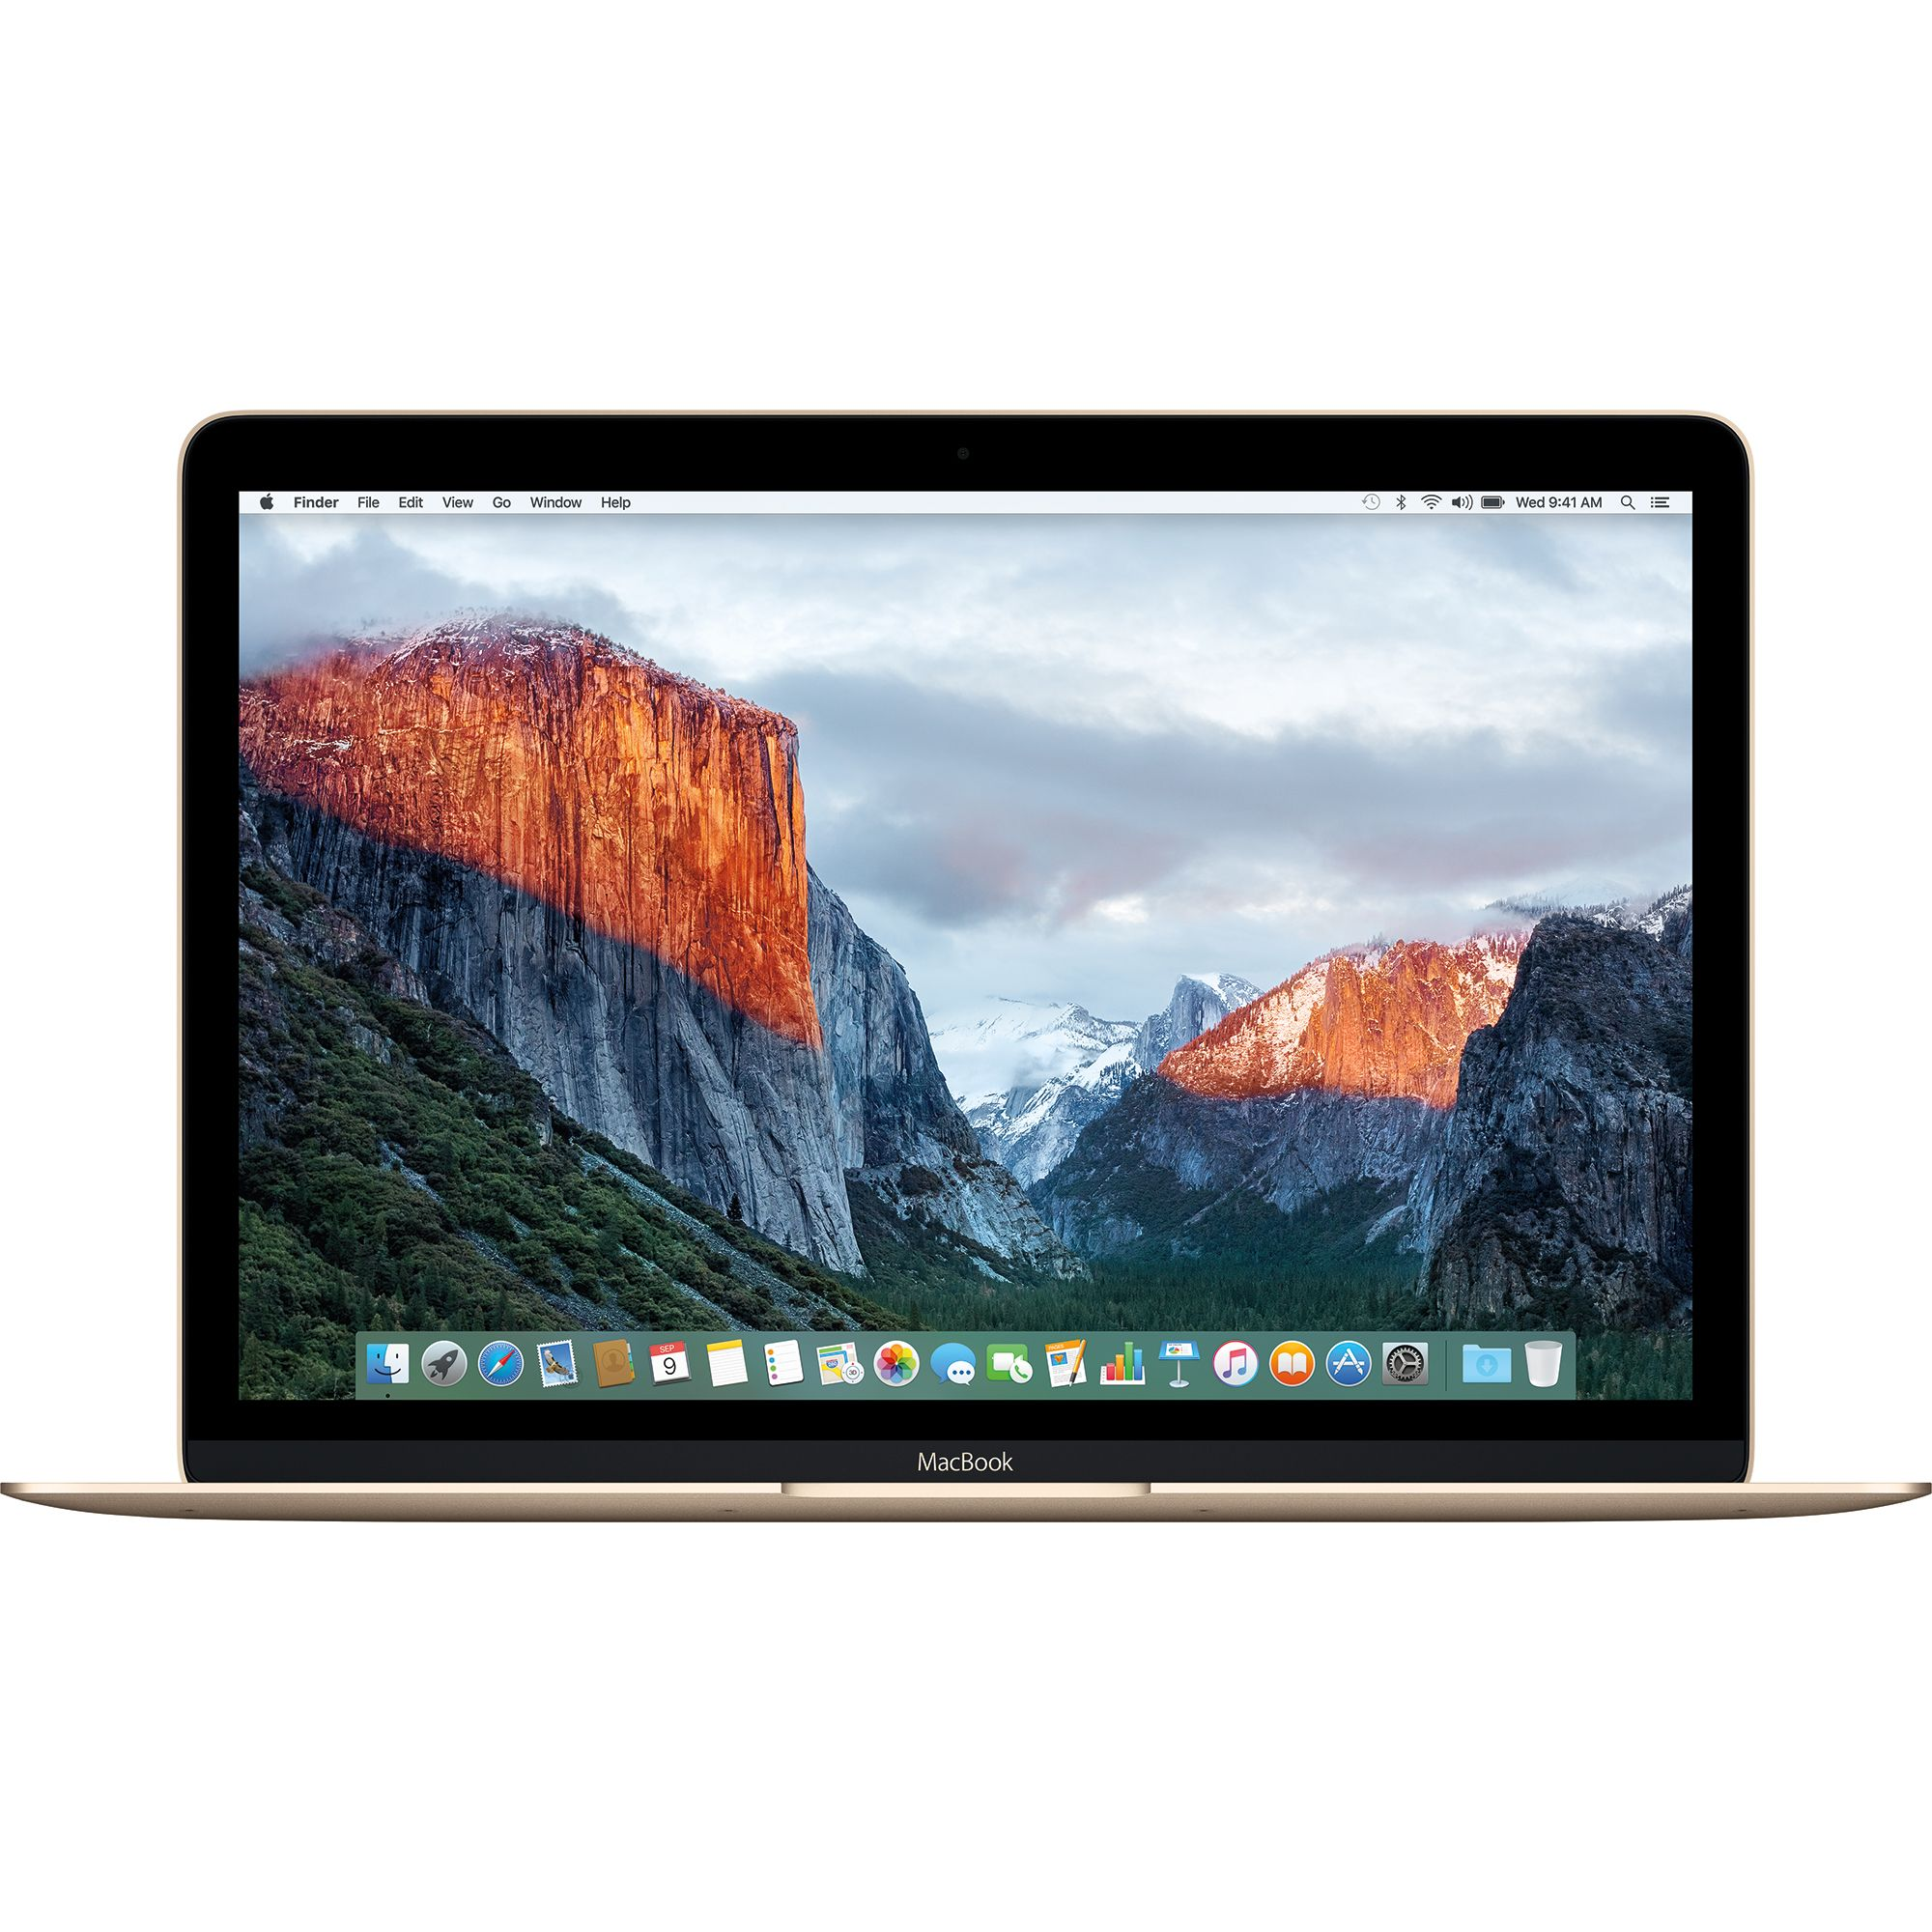 Notebook Apple MacBook 12 Retina Intel Core M3 1.2 GHz RAM 8GB SSD 256GB Tastatura INT Gold